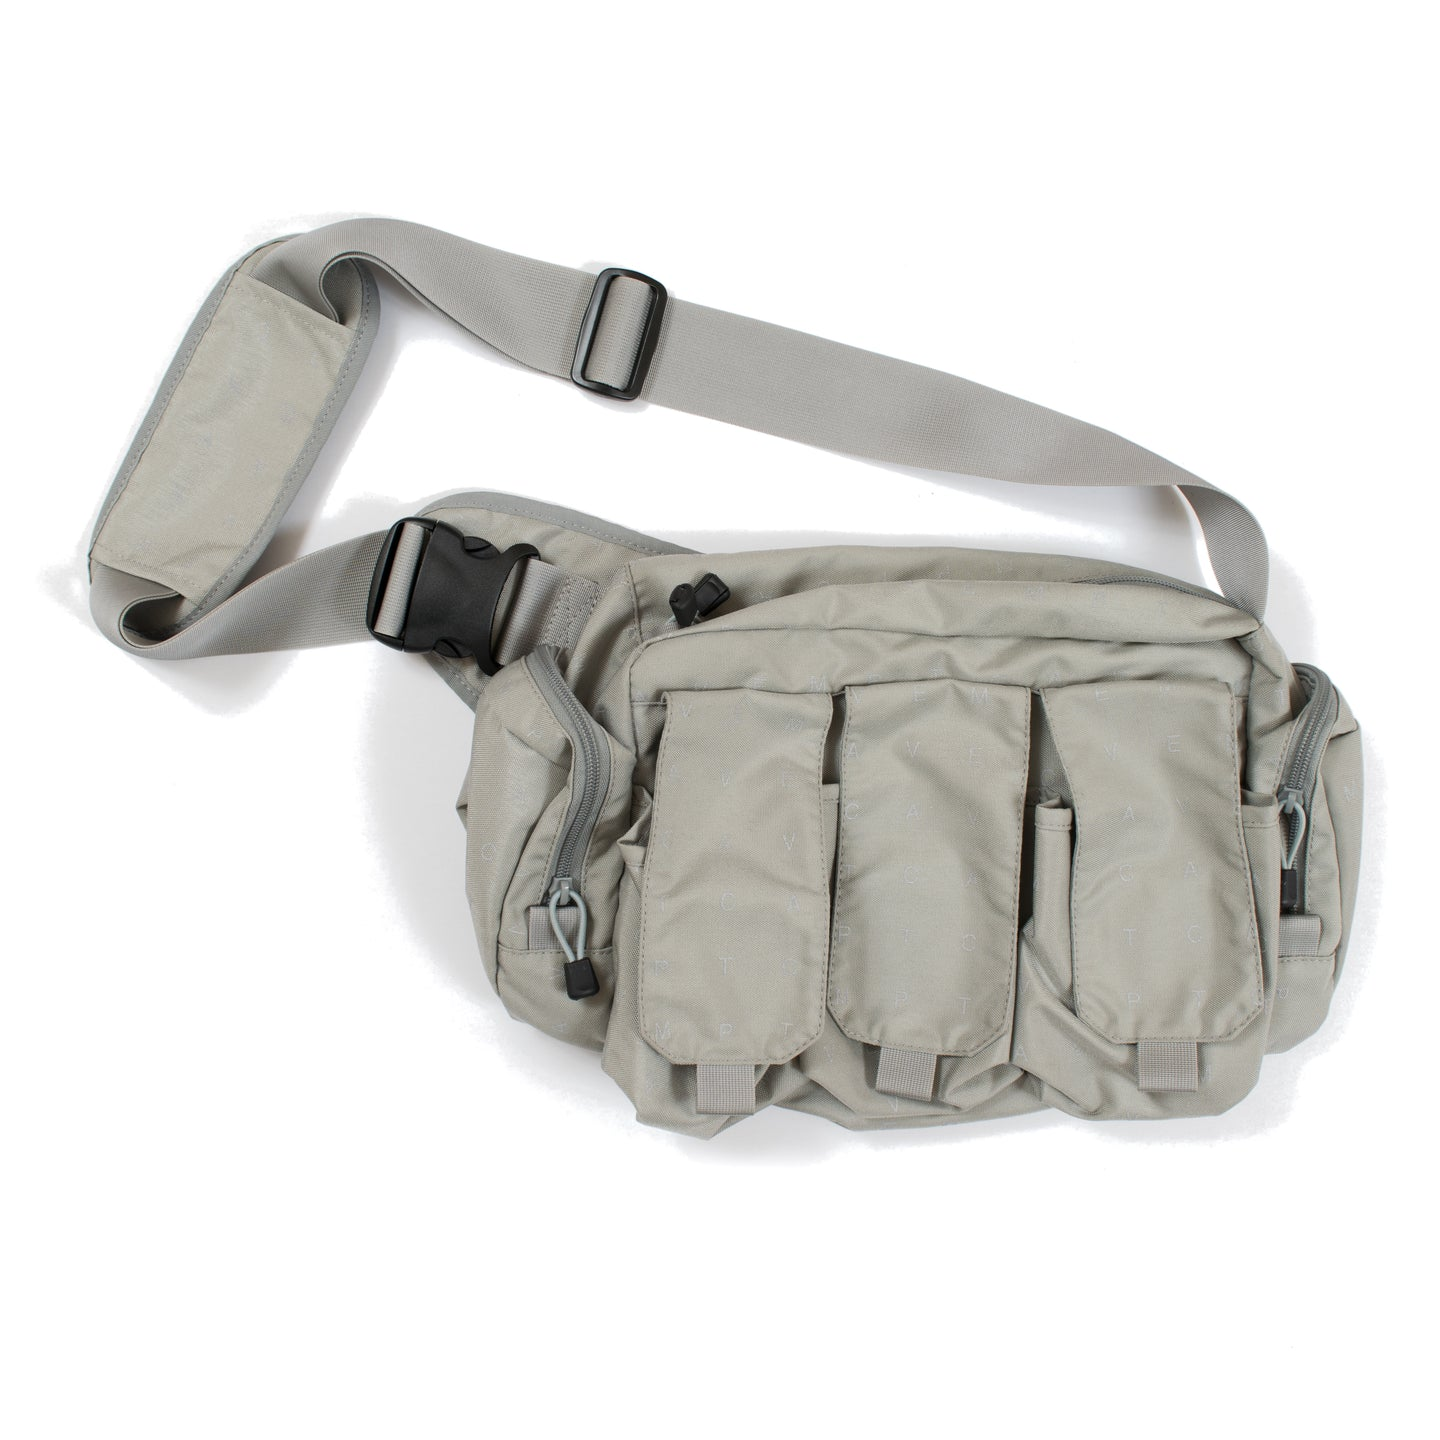 Cav Empt Array Shoulder Bag #1 (2019SS)